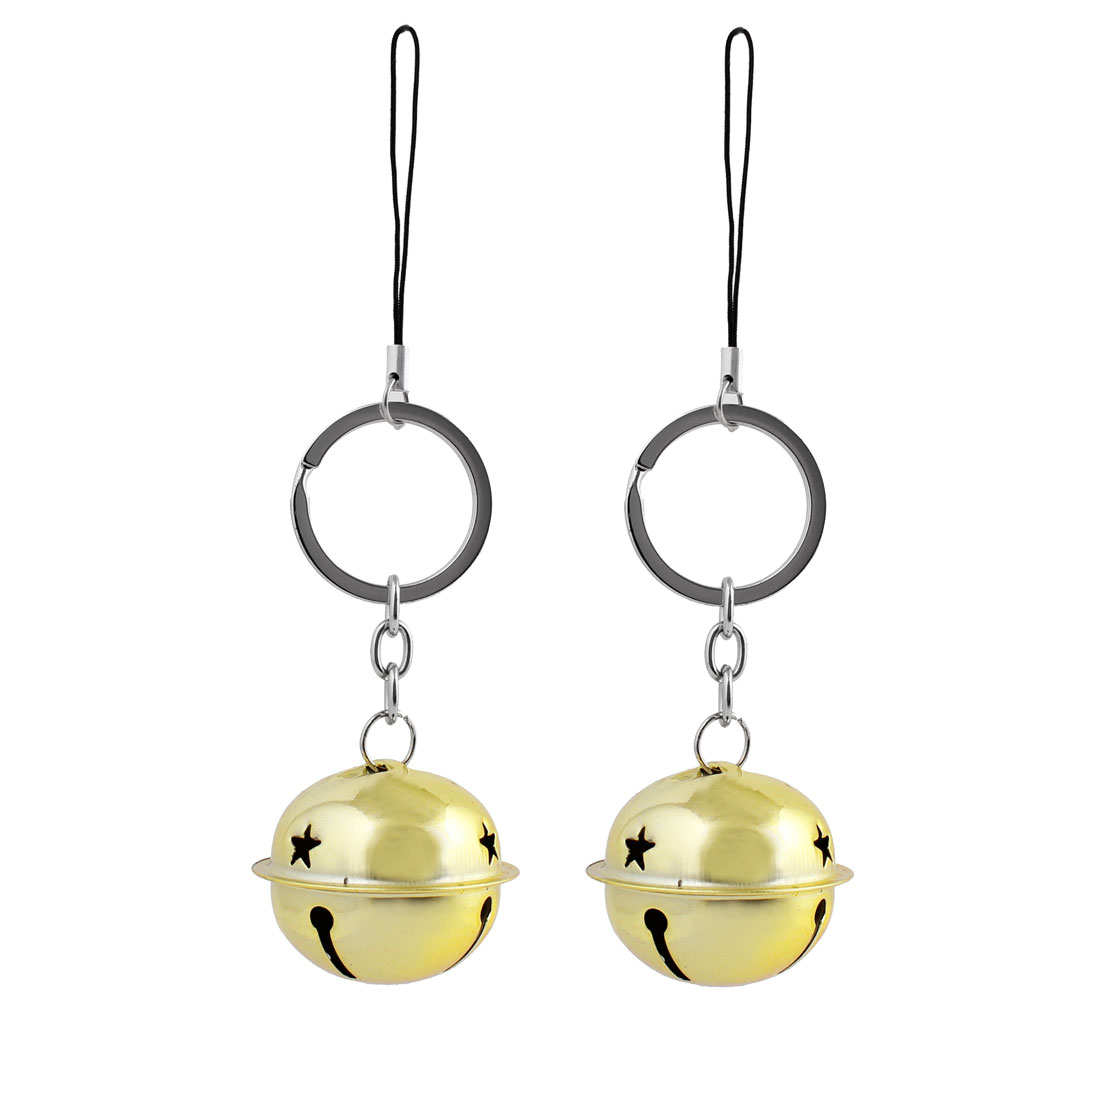 Metal Gold Tone Small Bell Dangling Pendant Key Ring Hanging Decoration Pair